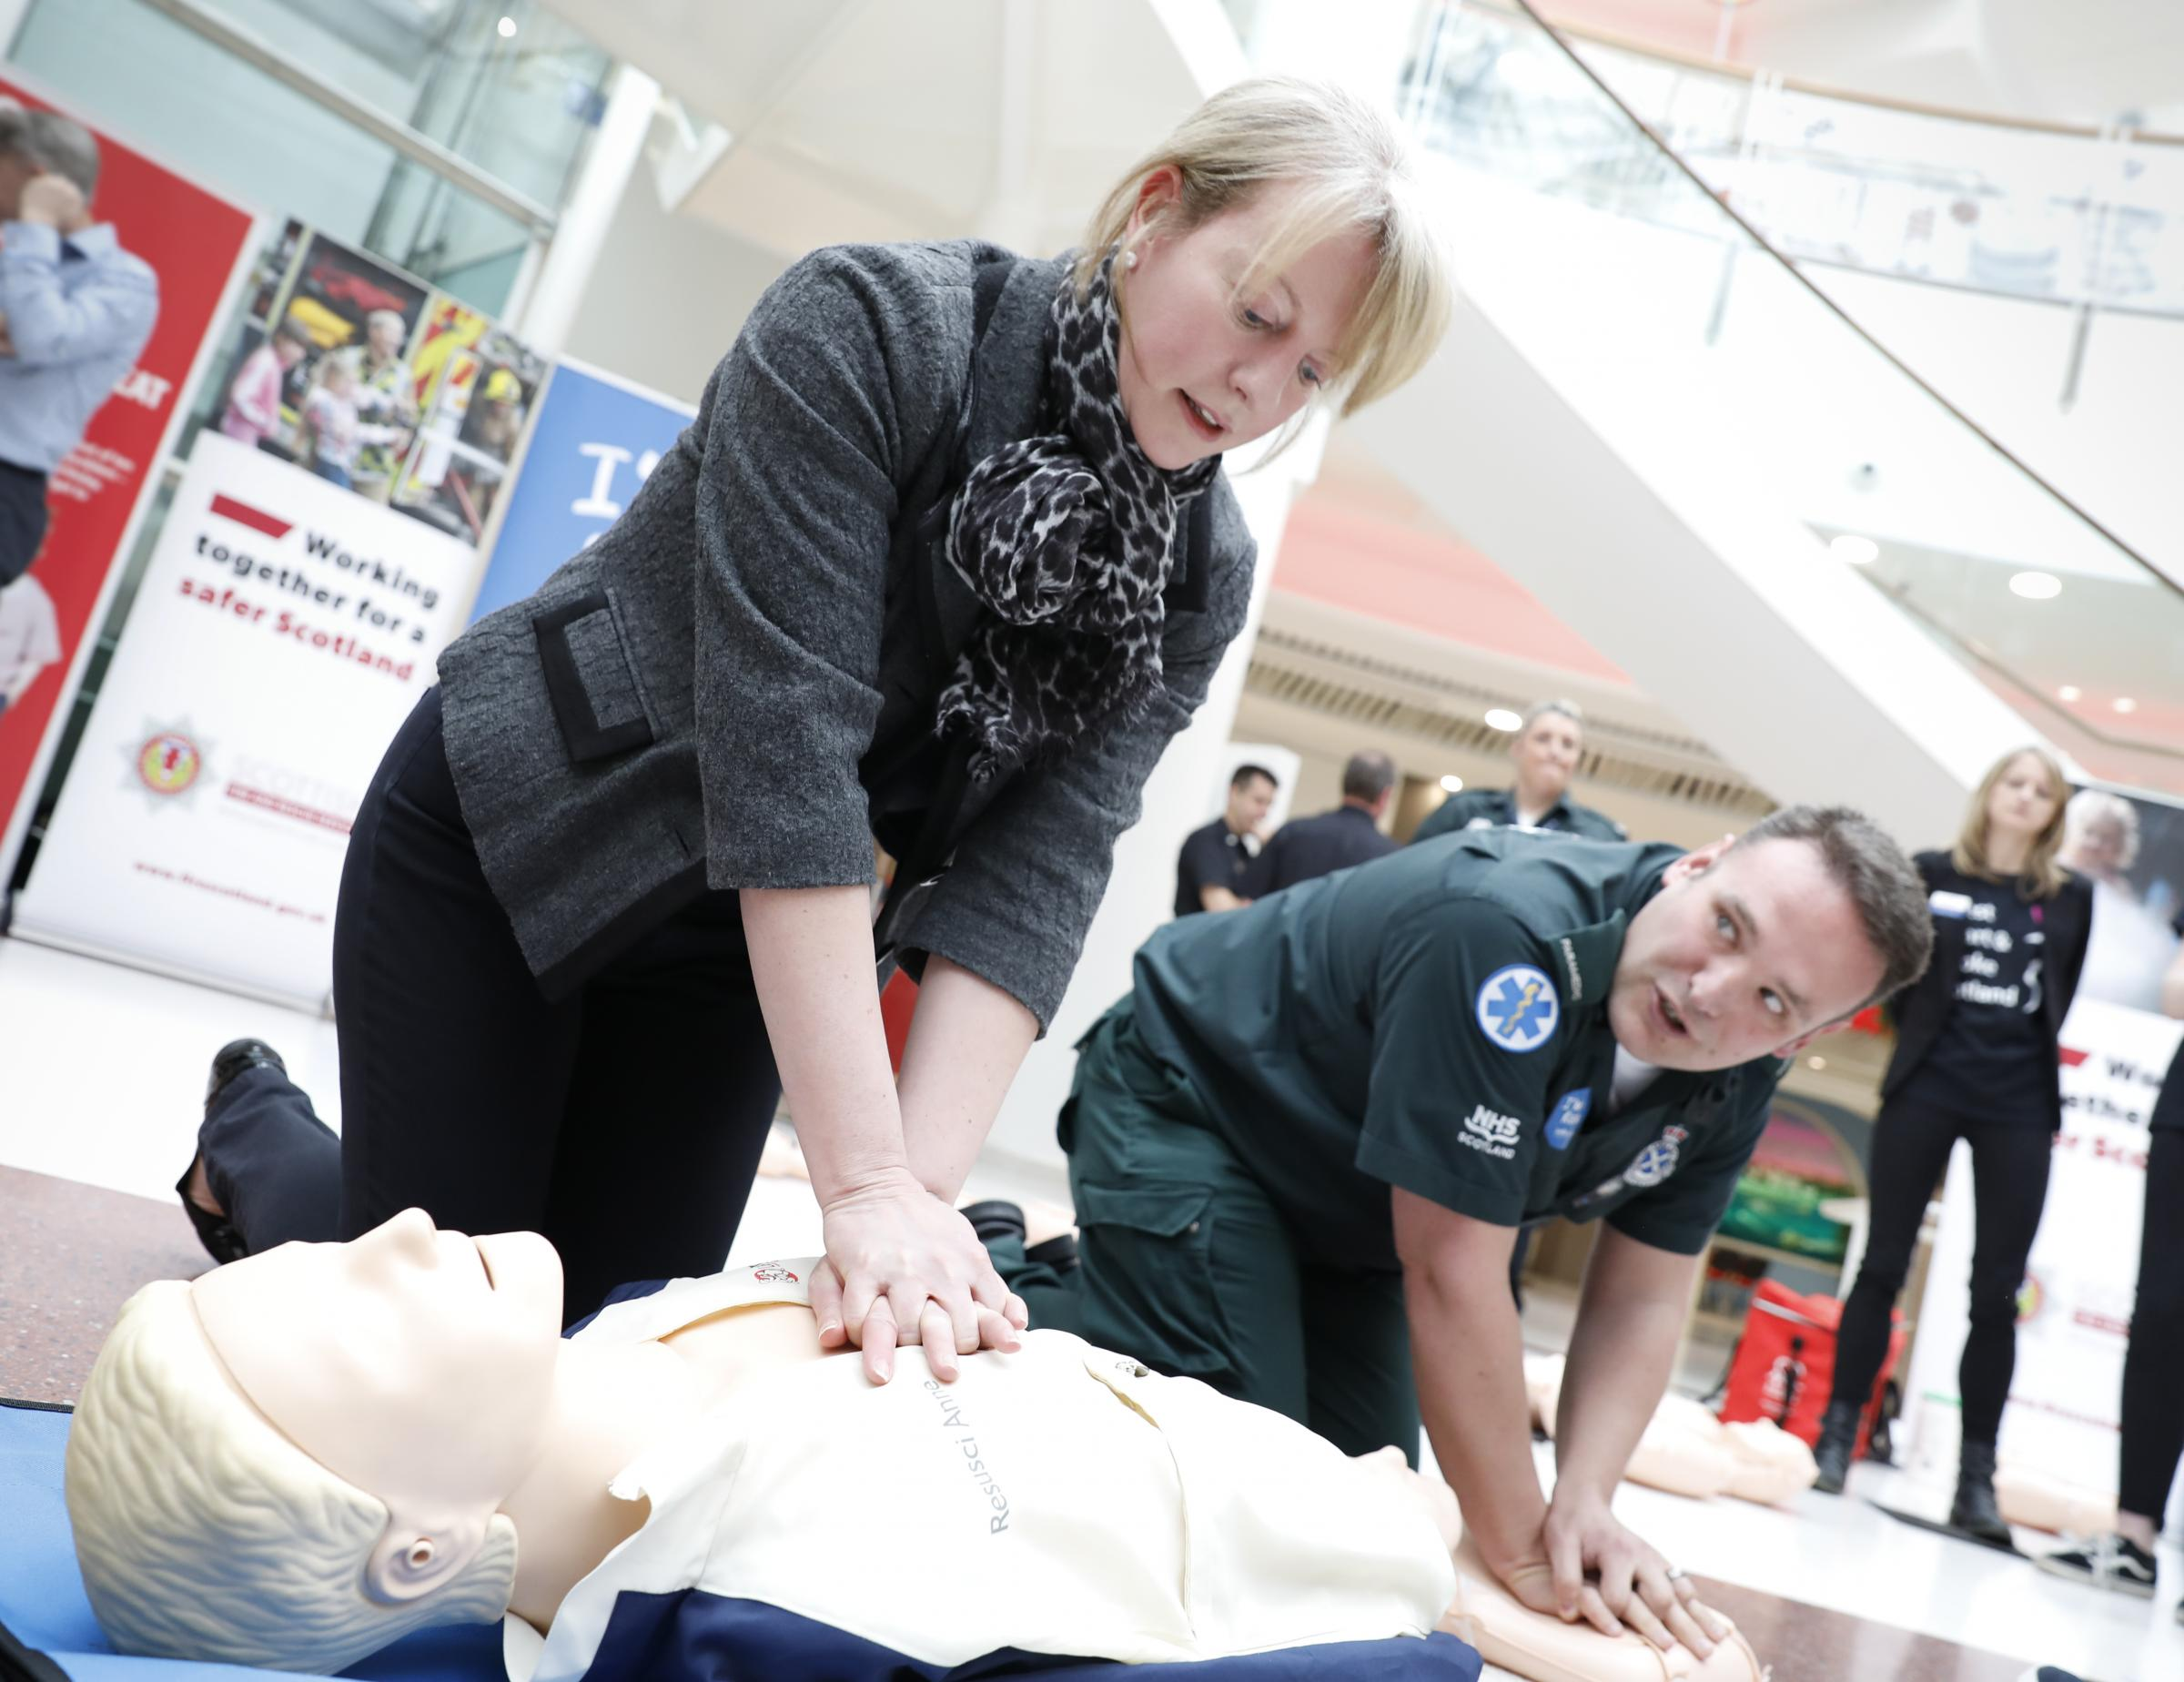 New CPR advert with Proclaimers tribute launched at intu Braehead